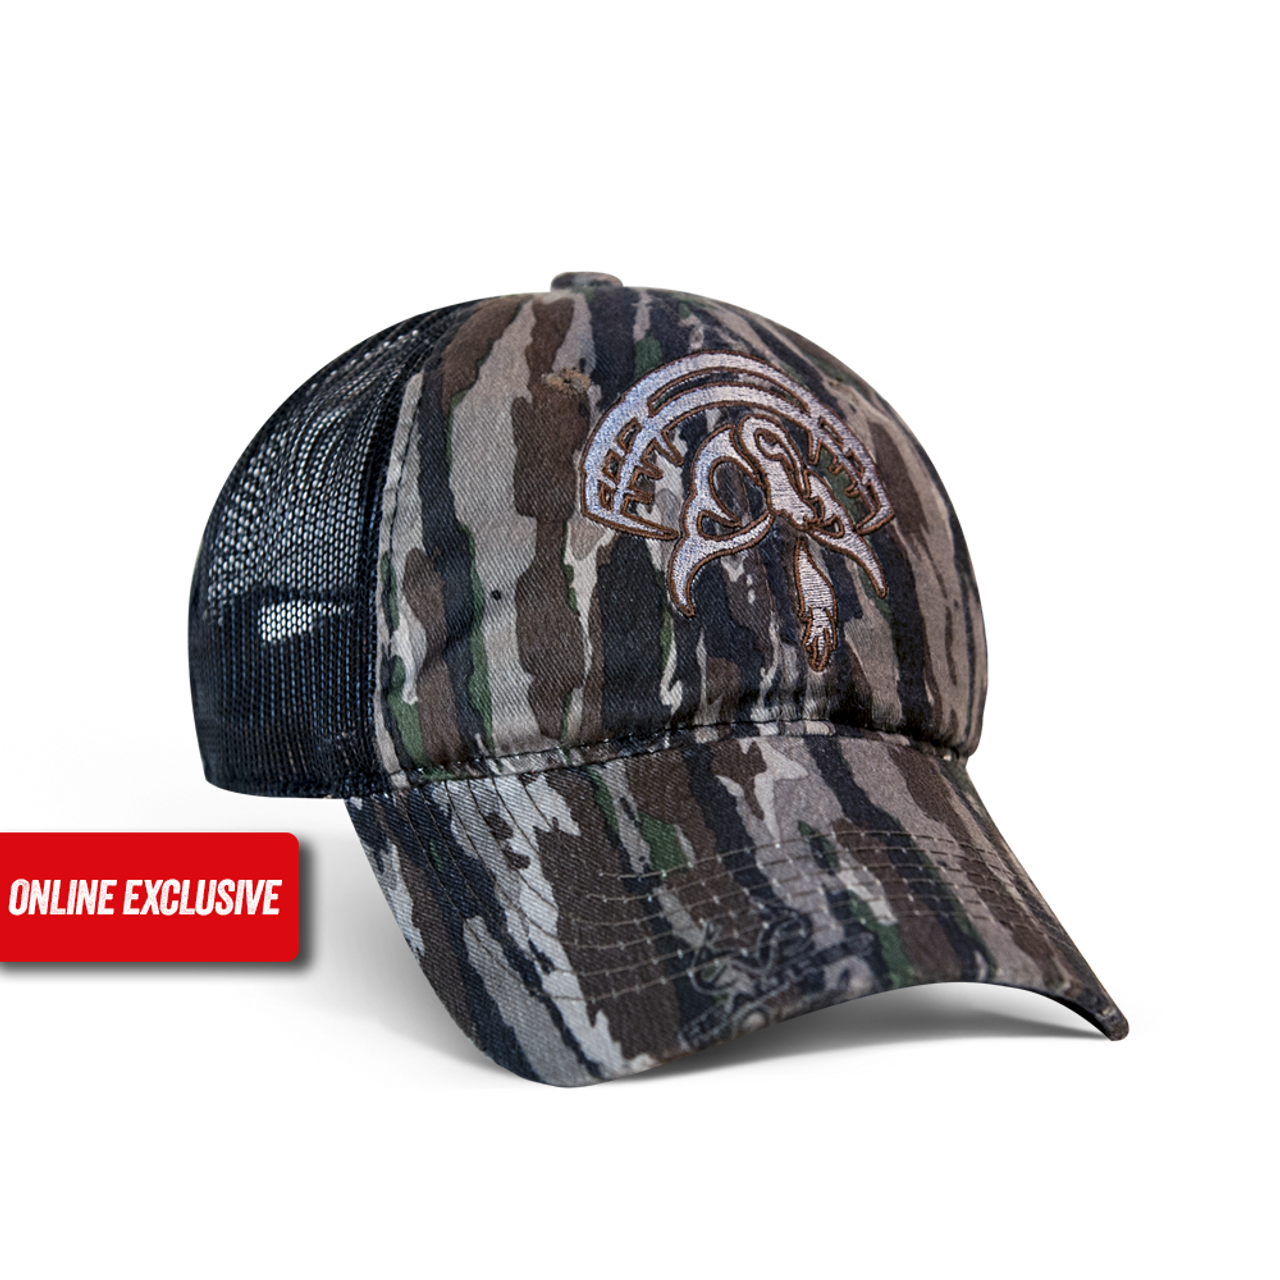 Original Real Tree Camo cap with black mesh back, velcro closure and the Strut Commander logo embroidered on the front in grey with a burgundy outline.